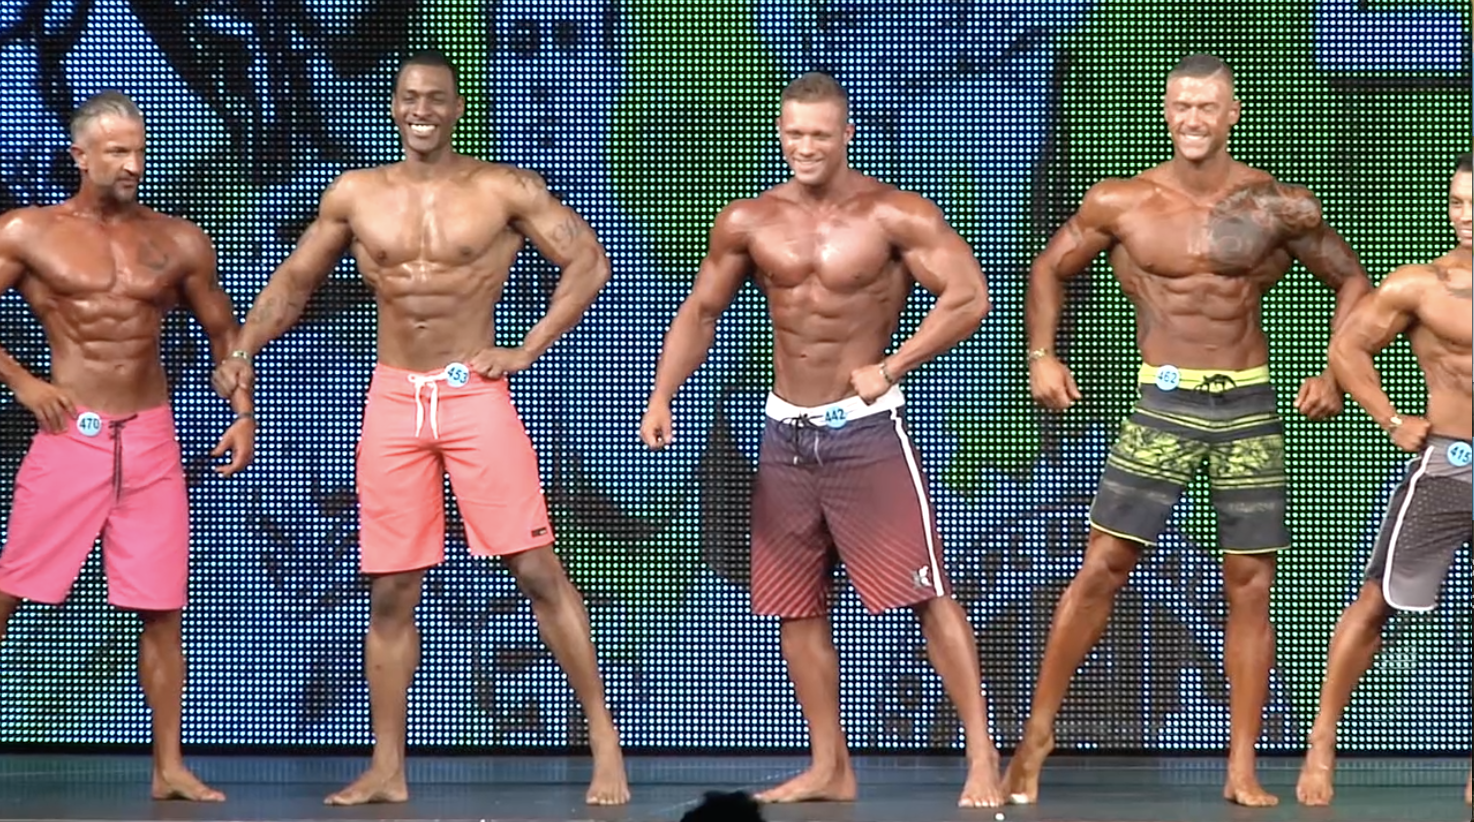 2018 NPC Emerald Cup Men's Physique Overall Video